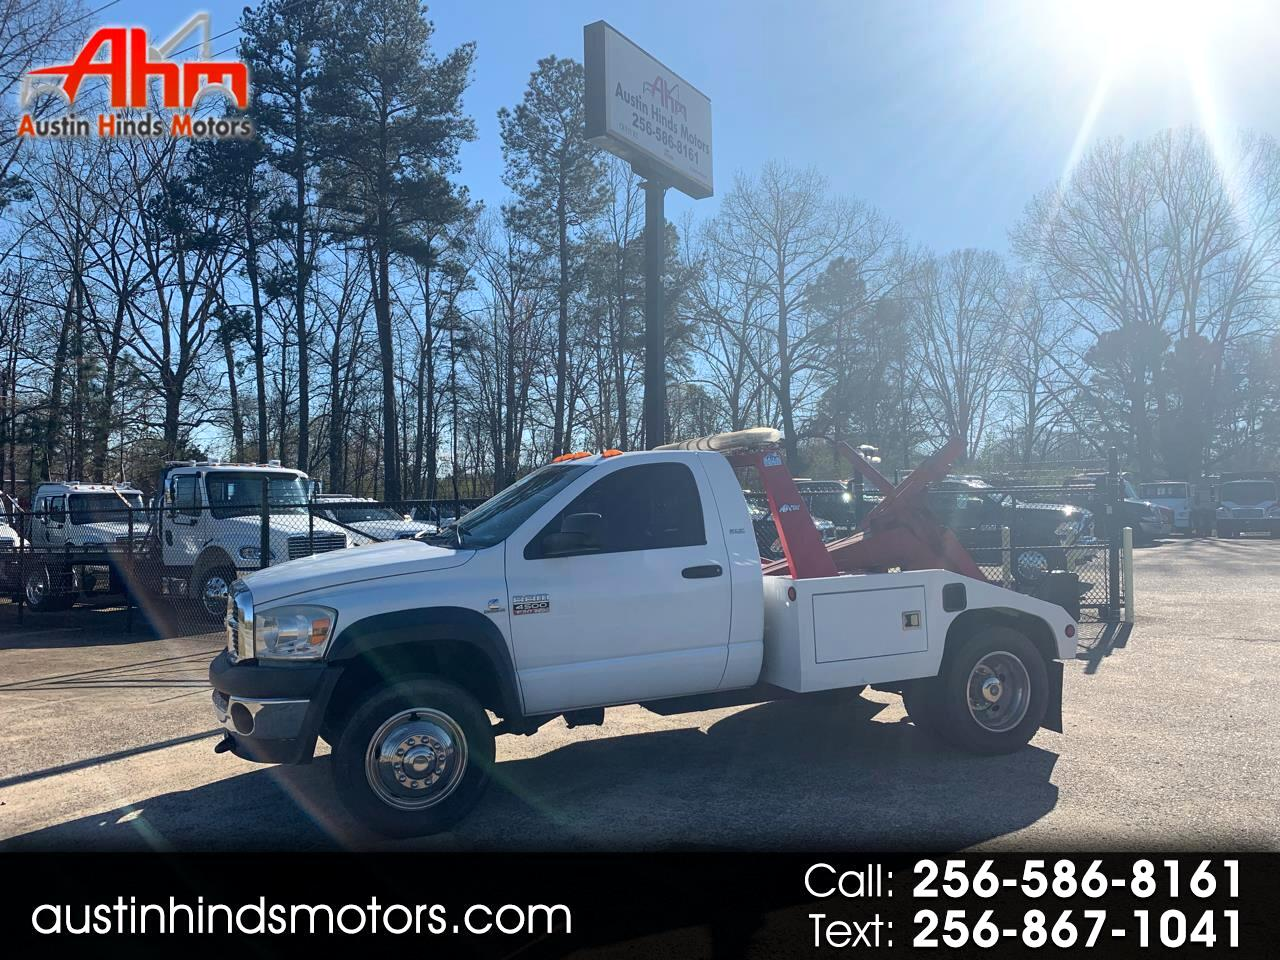 2008 Dodge Ram 4500 Regular Cab 2WD